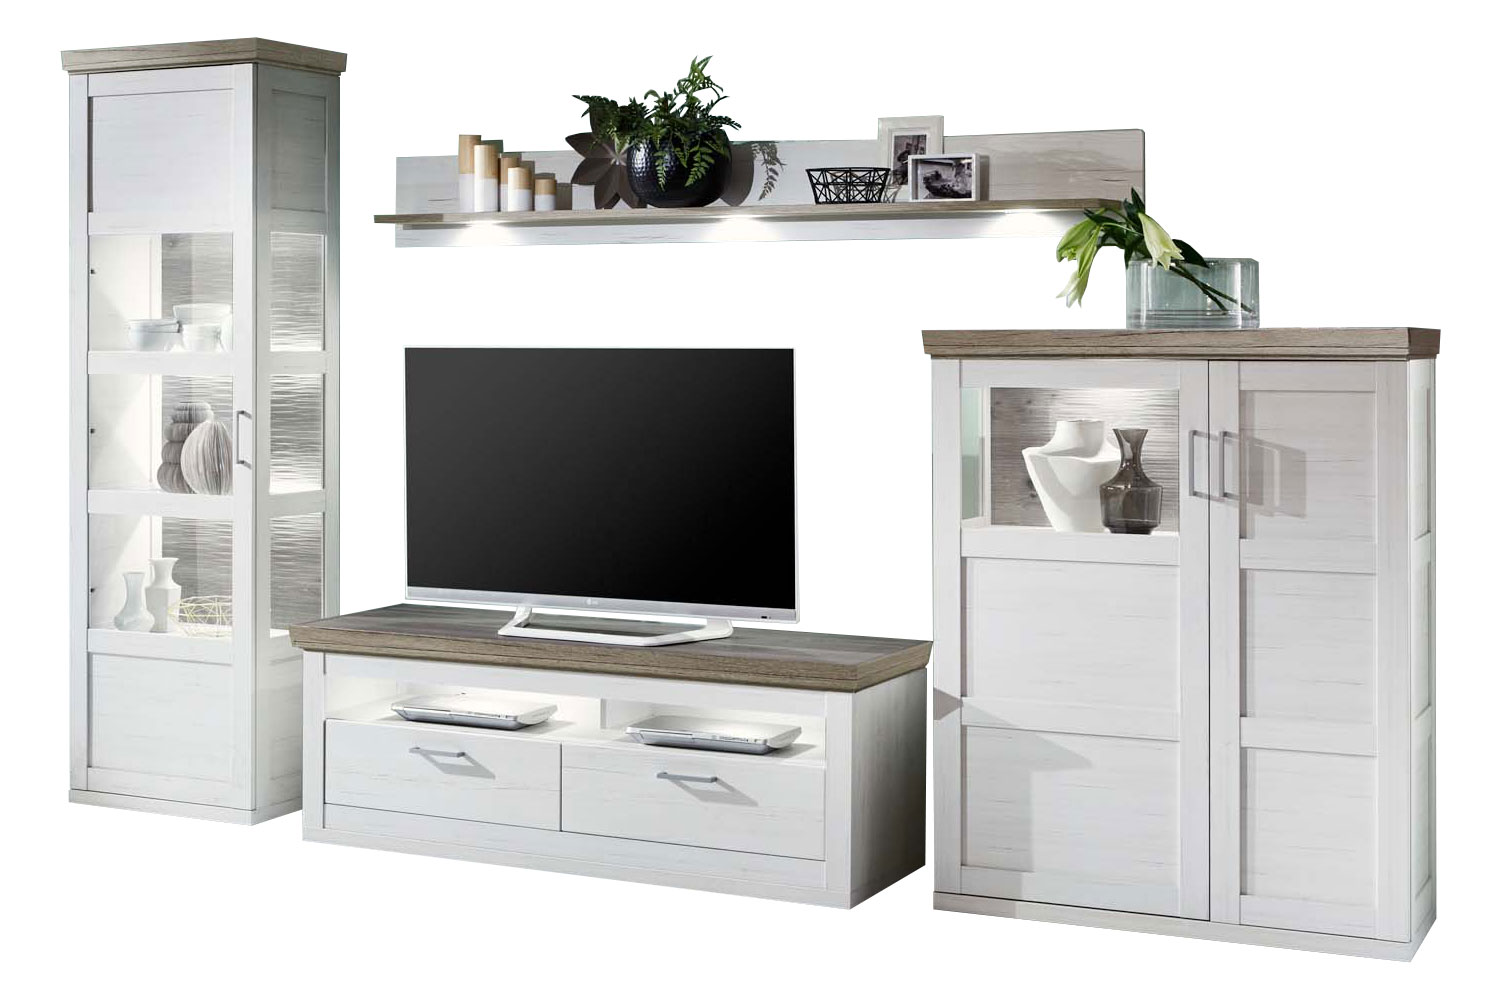 ideal m bel wohnwand bana 28 pino aurelio san remo eiche m bel letz ihr online shop. Black Bedroom Furniture Sets. Home Design Ideas